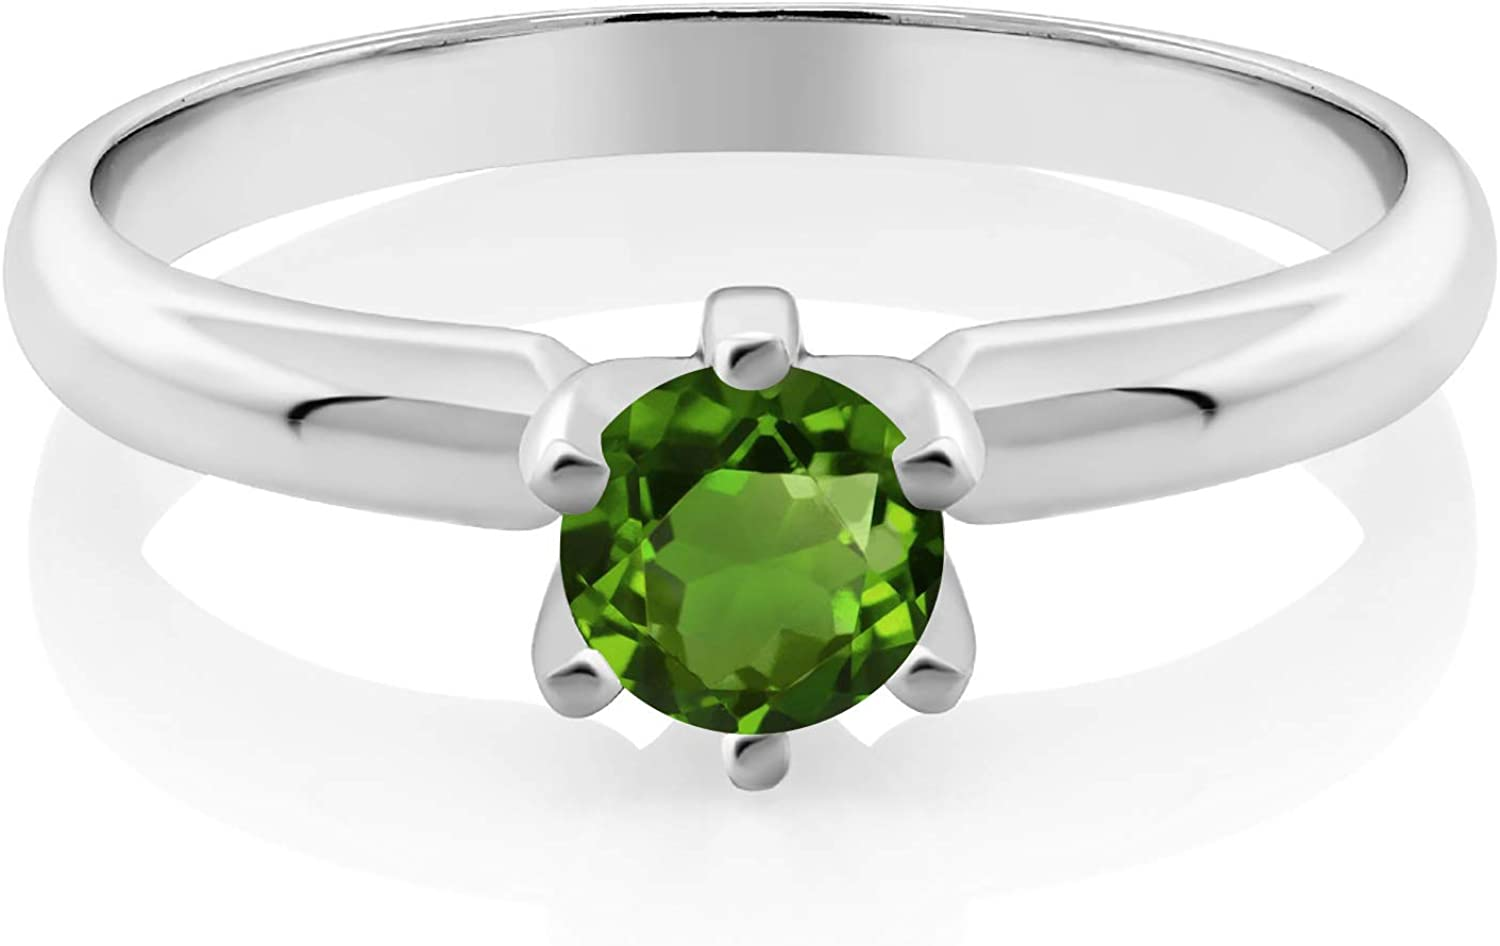 NEW before selling ☆ Gem Stone King Max 82% OFF 0.50 Ct 5mm Chrome 925 Green Diopside Sterl Round